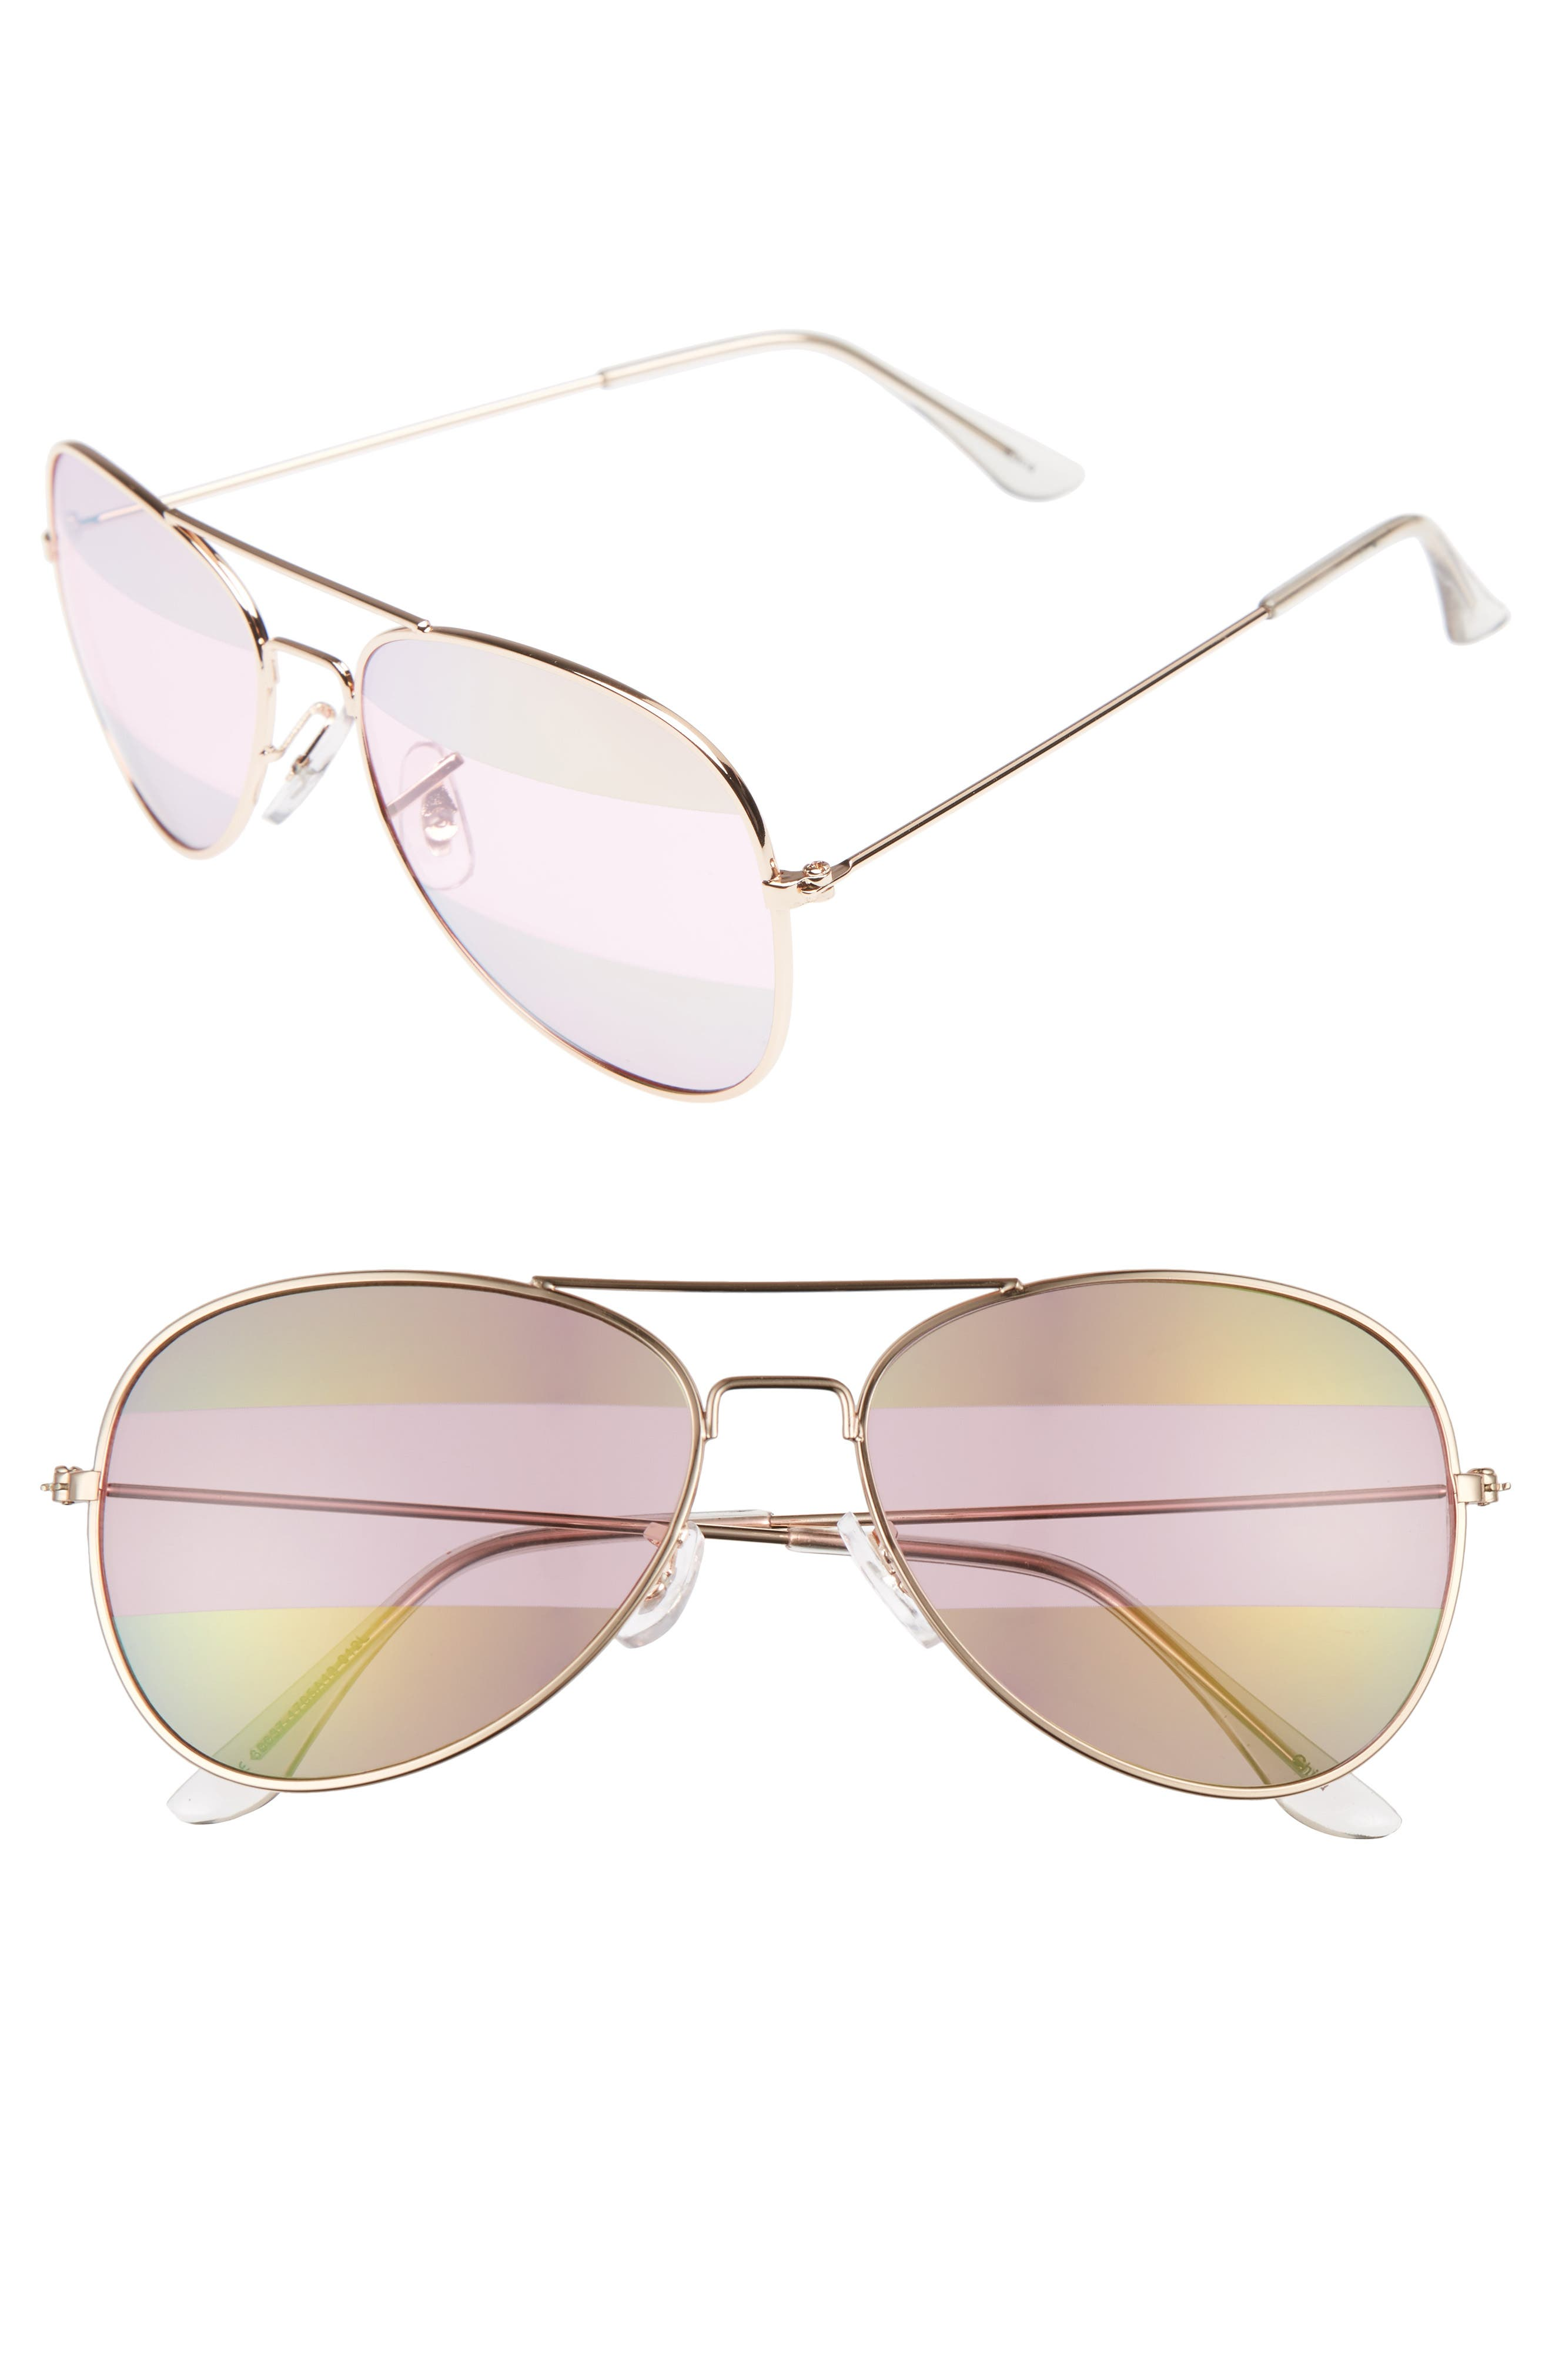 Alternate Image 1 Selected - BP. 56mm Two-Tone Aviator Sunglasses